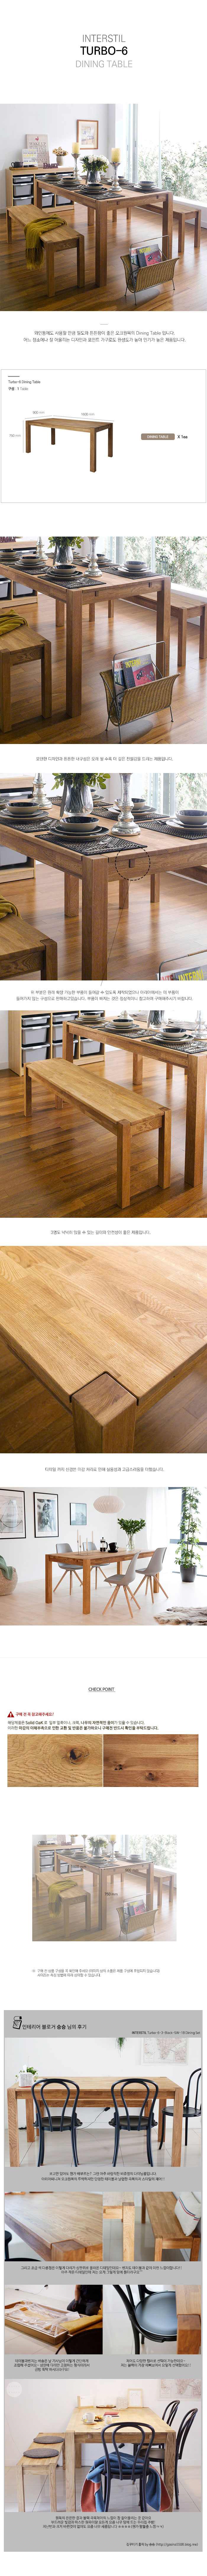 Turbo-6-Dining-Table_180521.jpg